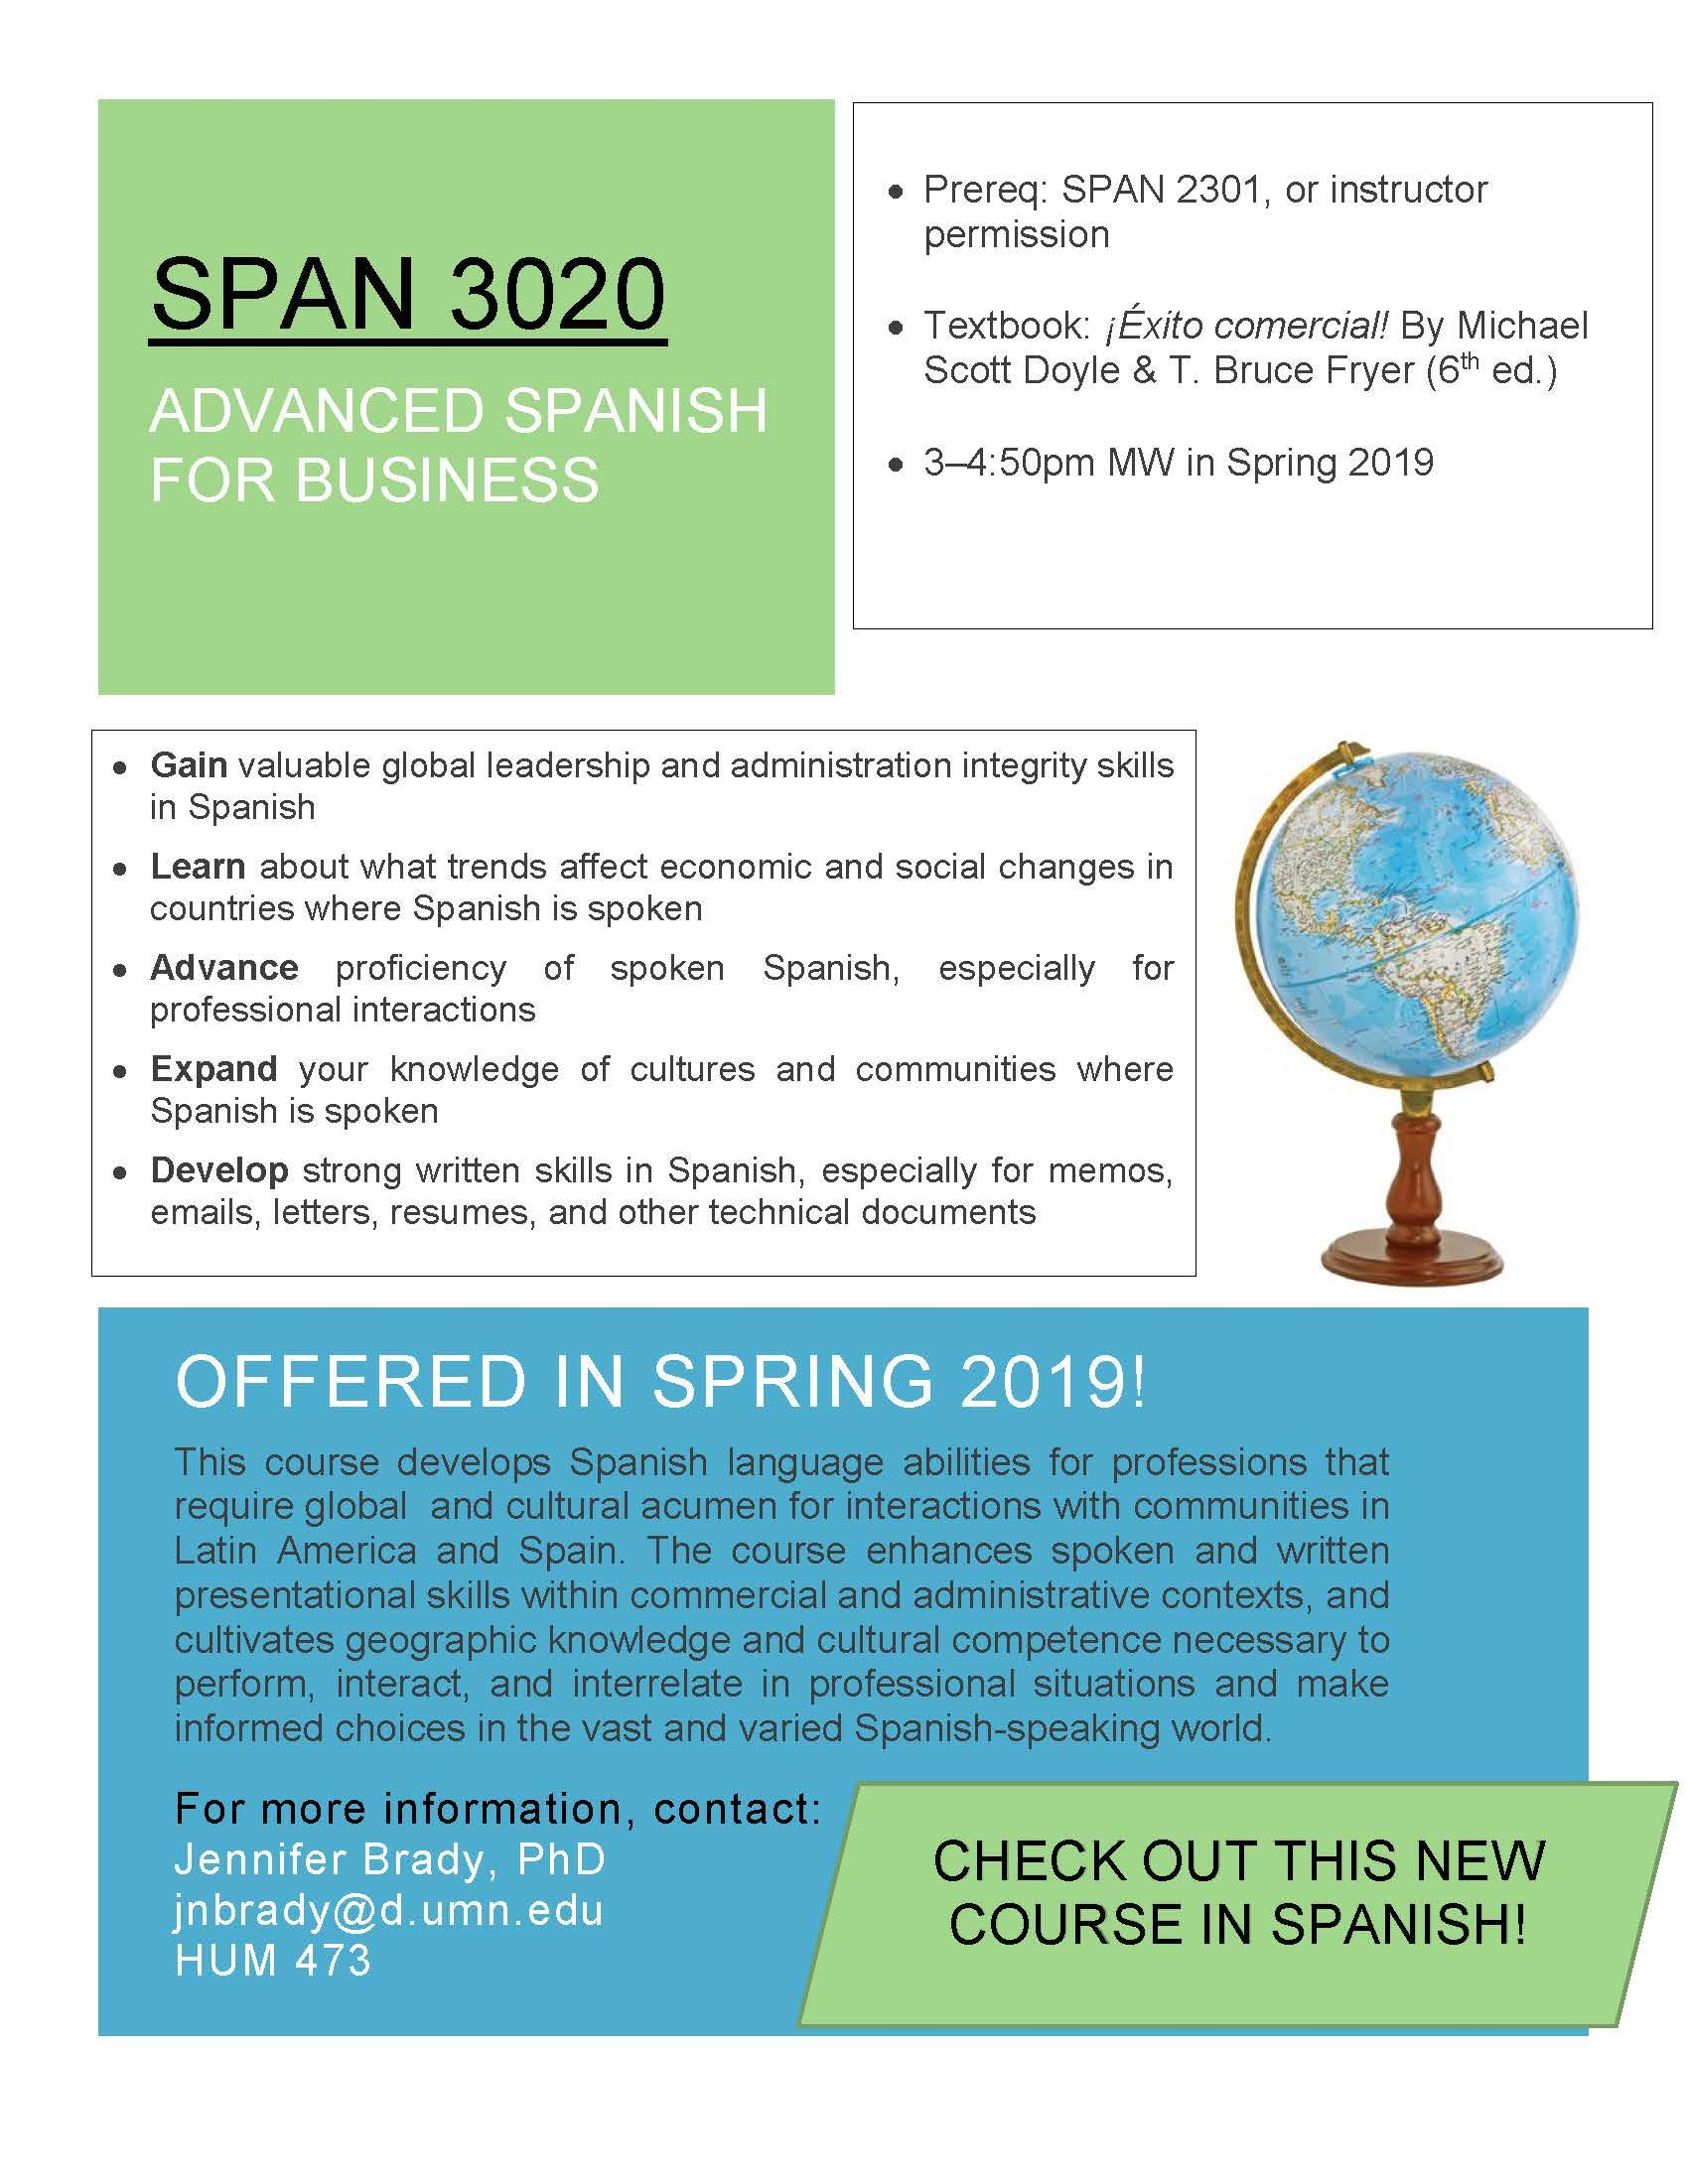 Advanced Spanish for Business course